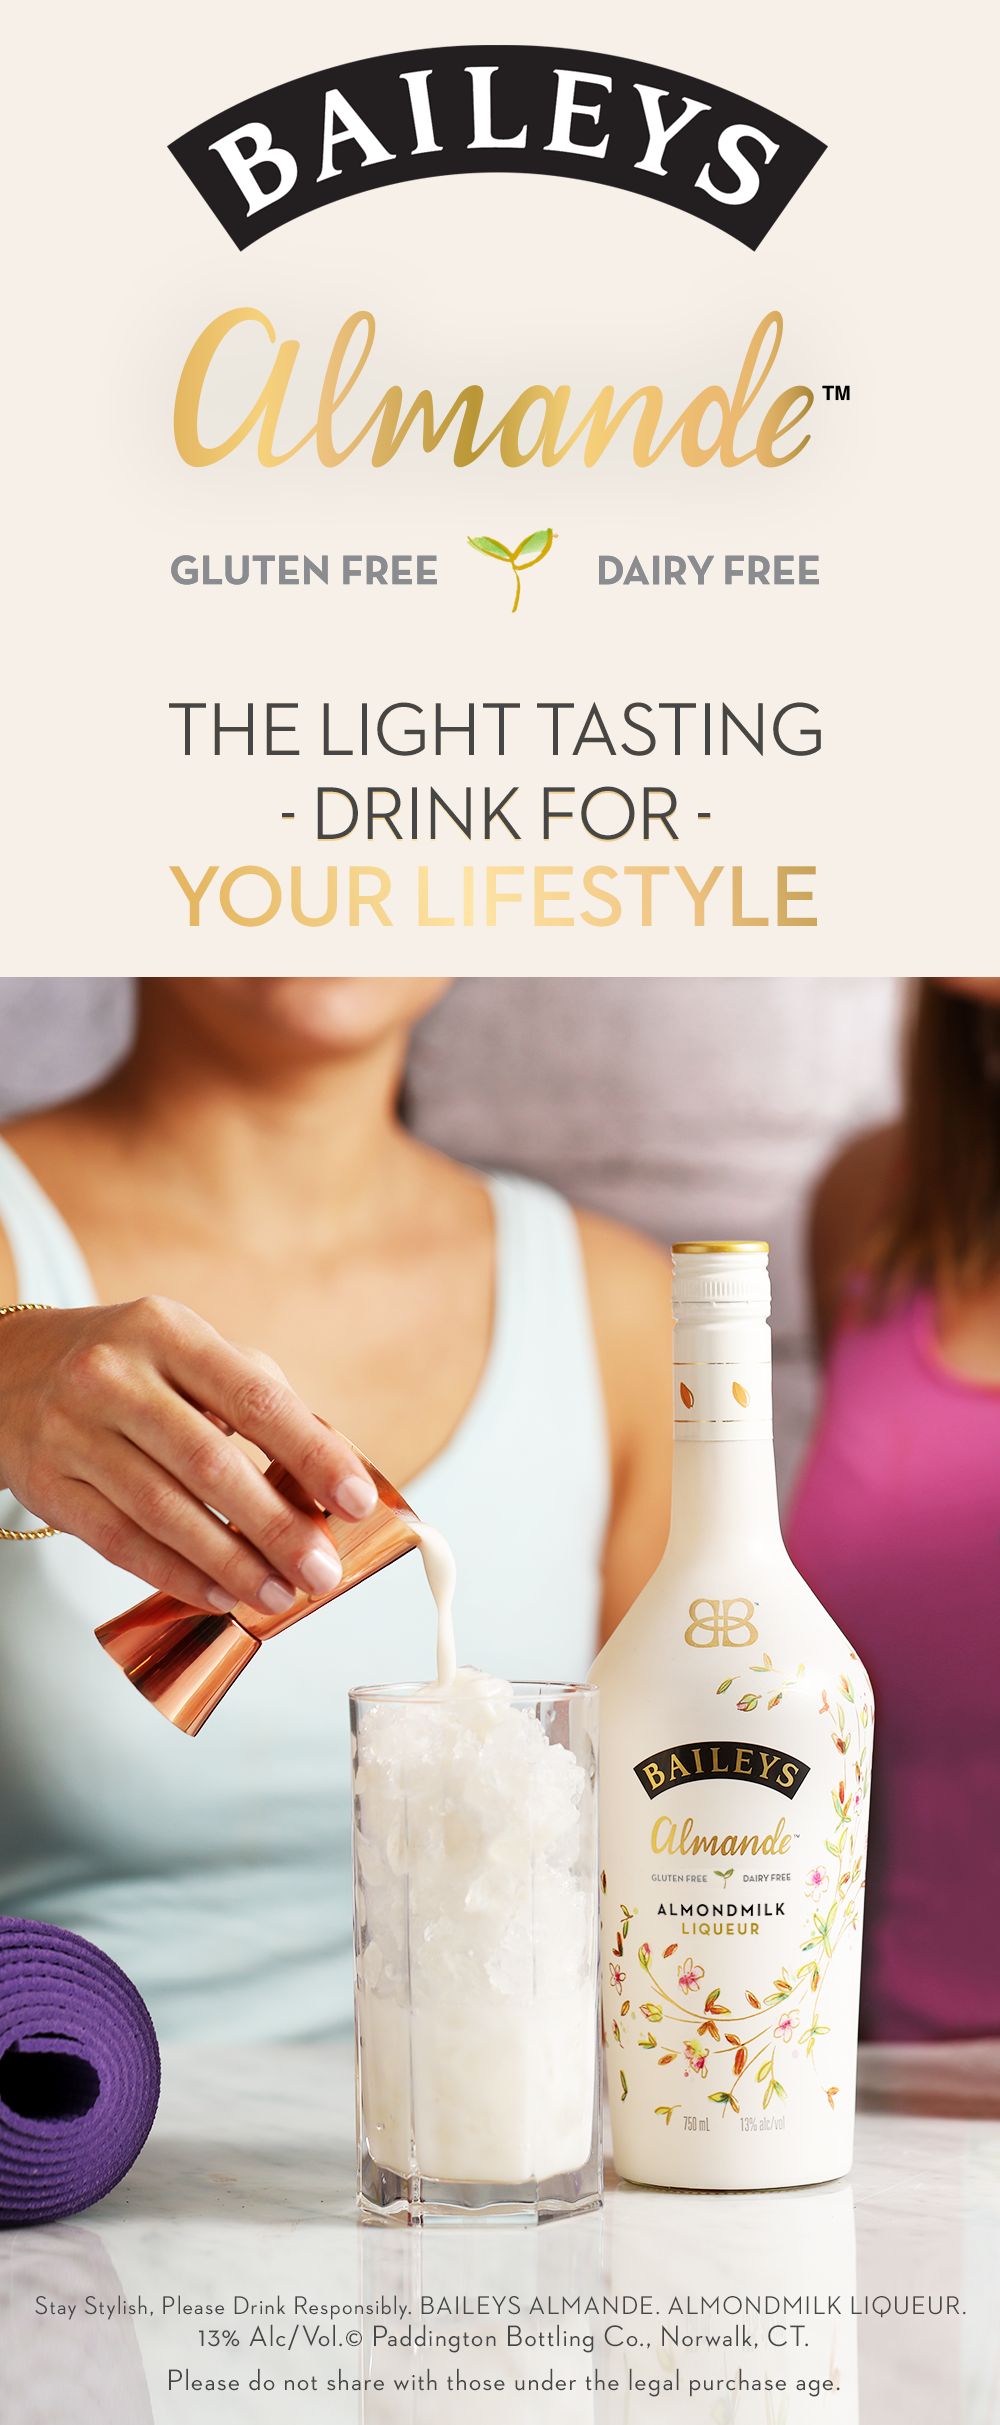 A drink for active and stylish